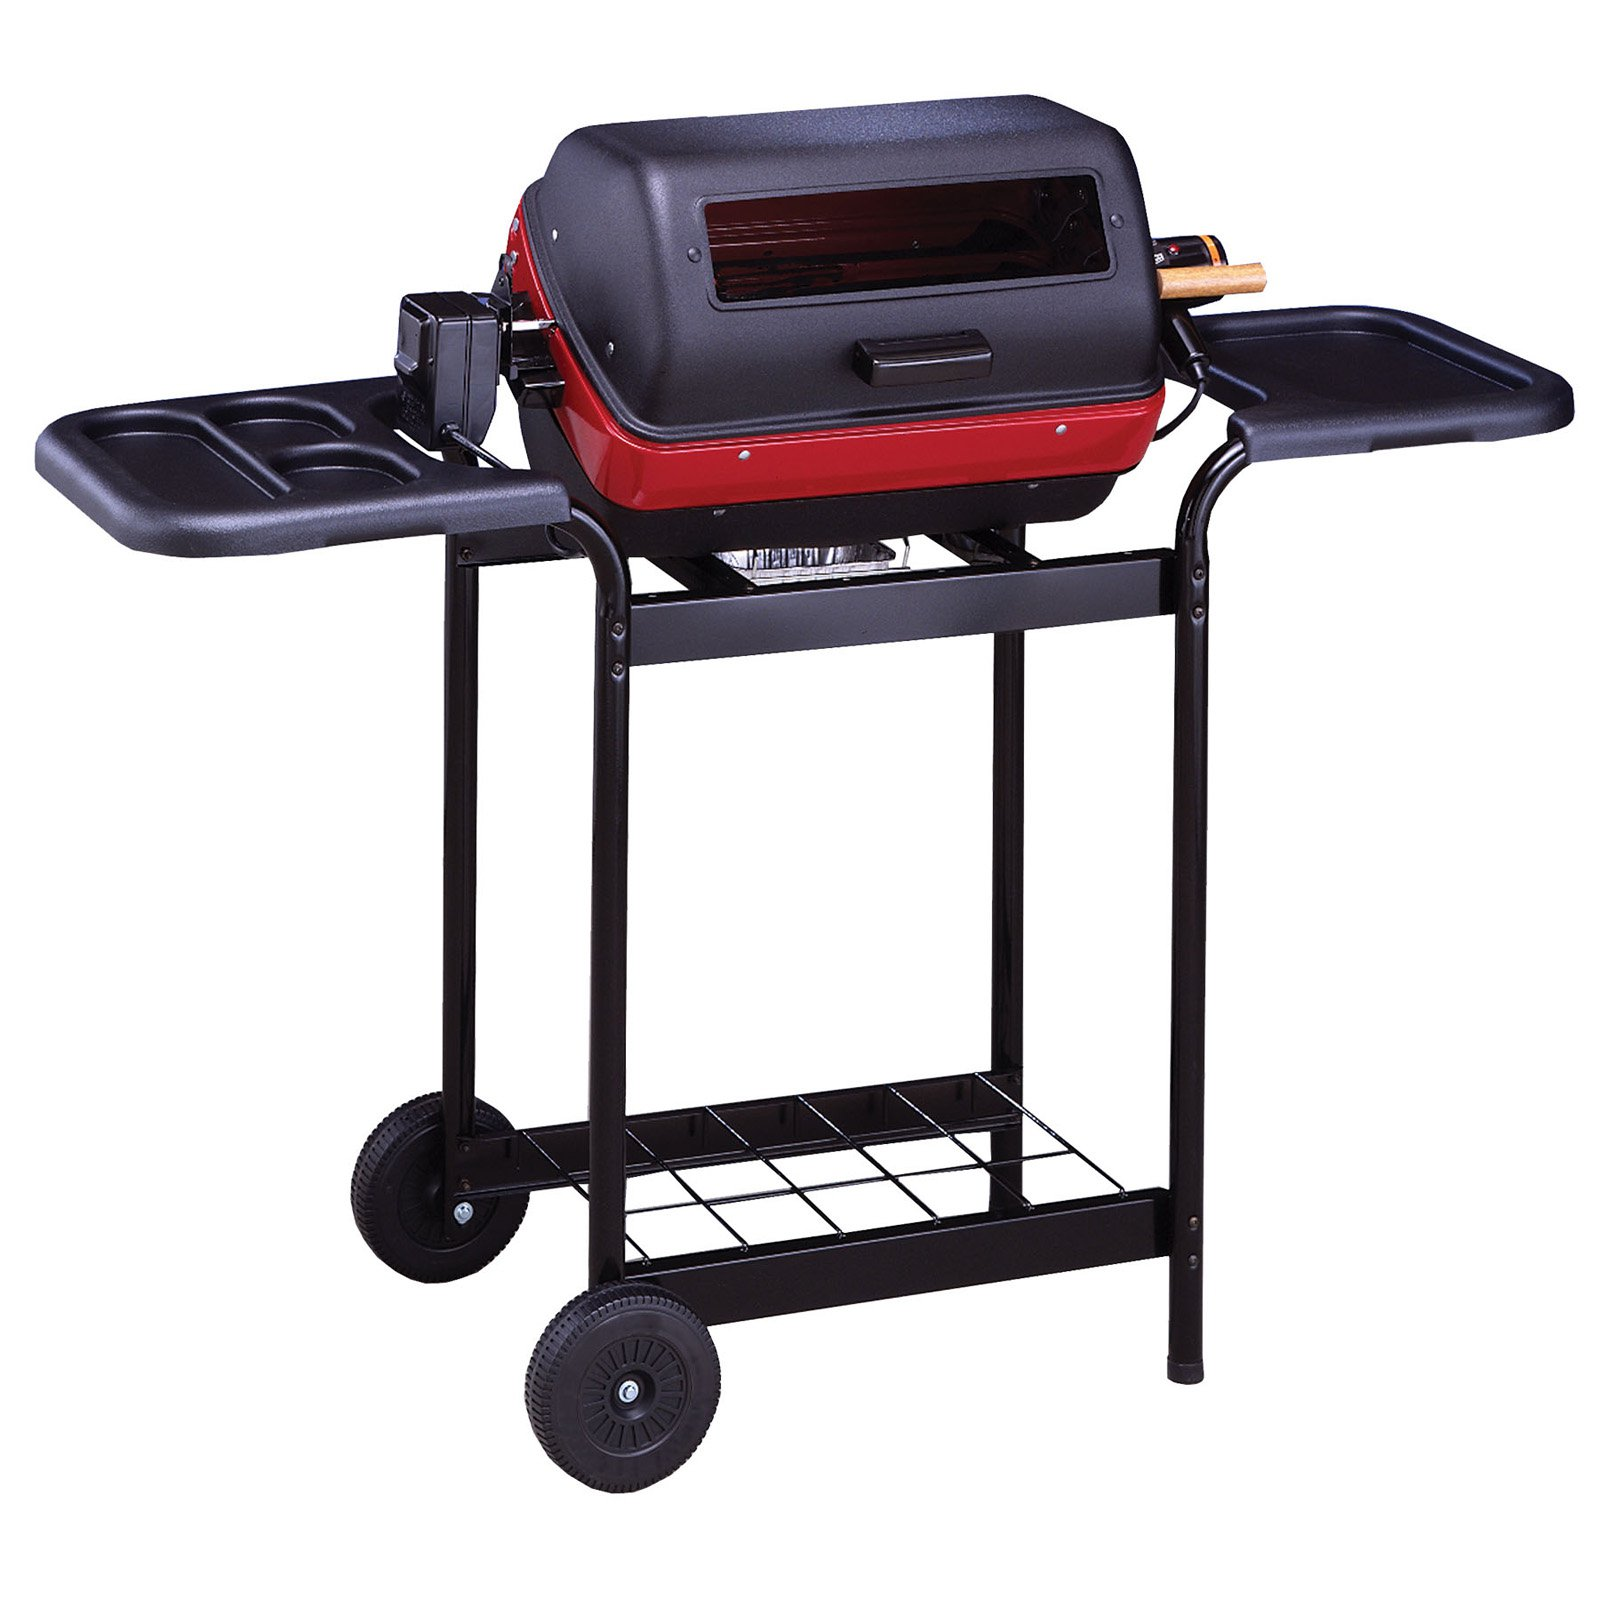 Meco 1500-Watt Deluxe Electric Grill with Rotisserie Included